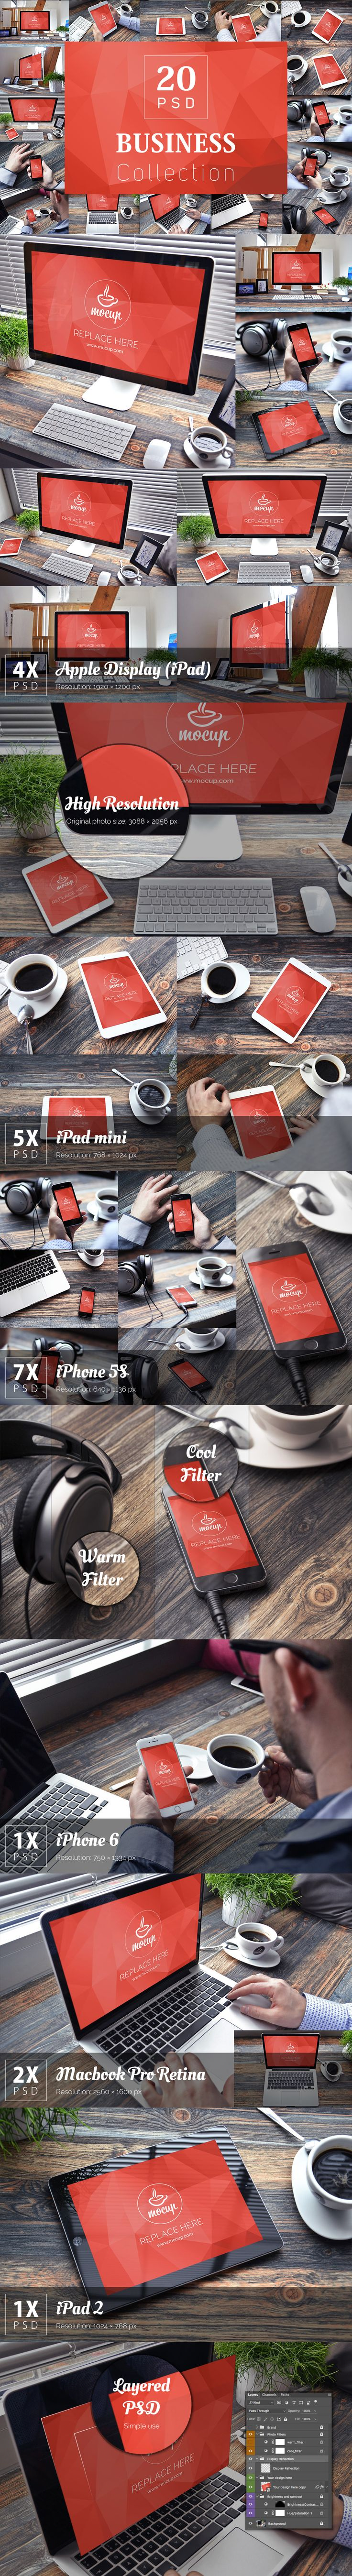 "Premium photorealistic bundle – 20 PSD Mockups of the iPhone 6, iPhone 5s, MacBook Pro Retina 13-inch, Apple Display 27-inch, iPad 2 and iPad Mini named ""Business Collection"". Just open PSD file in Photoshop and insert your design in smart object. Your design will fit in. Make your presentation look professional. Enjoy it!"